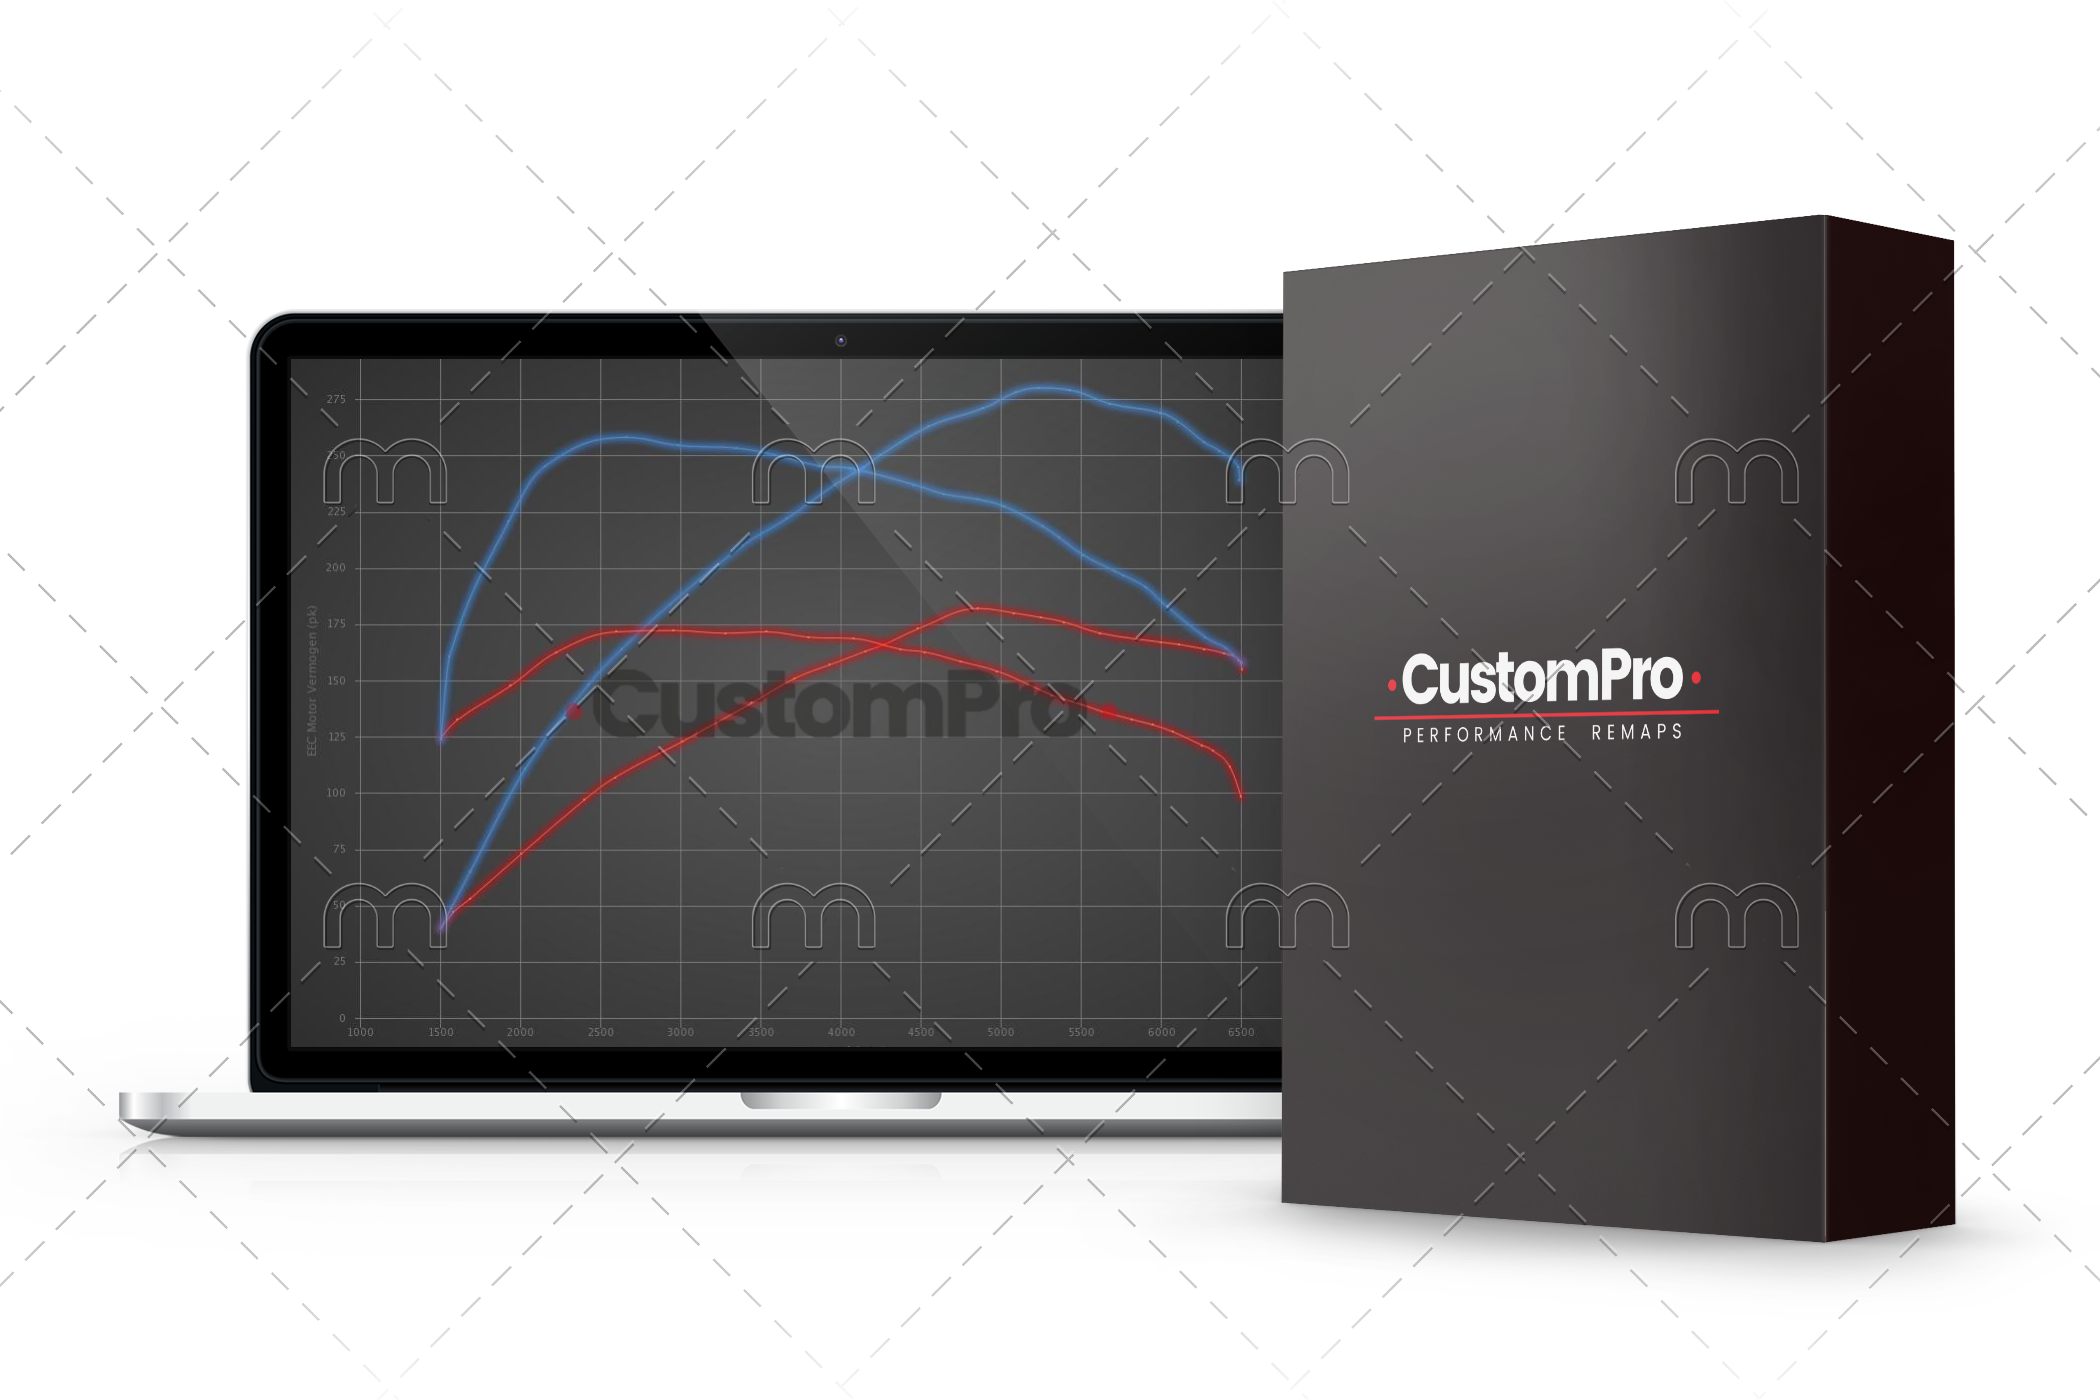 CustomPro ECU Software - Performance Centre